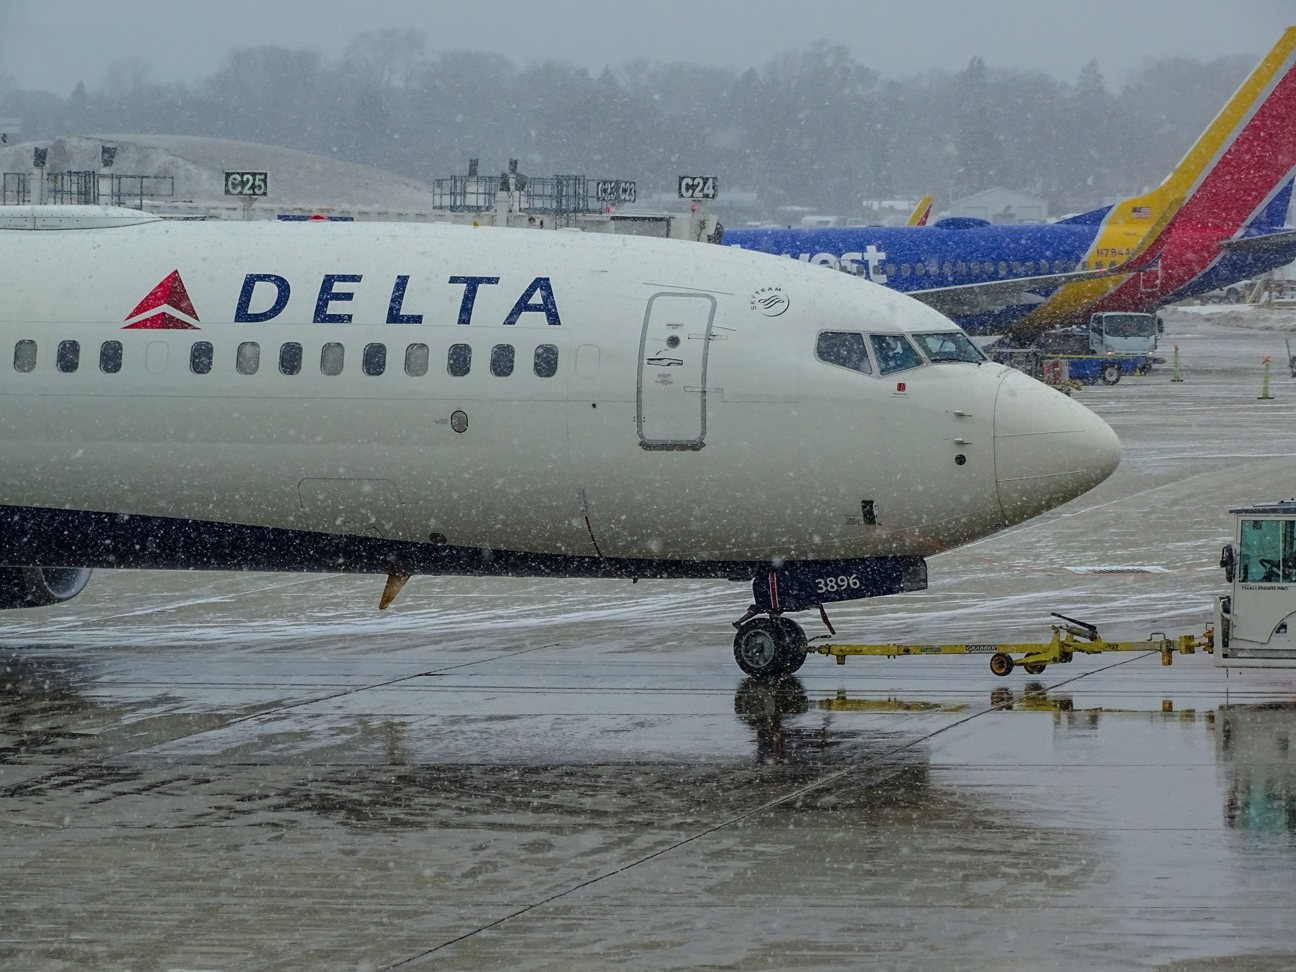 Delta Airlines DAL stock news and analysis